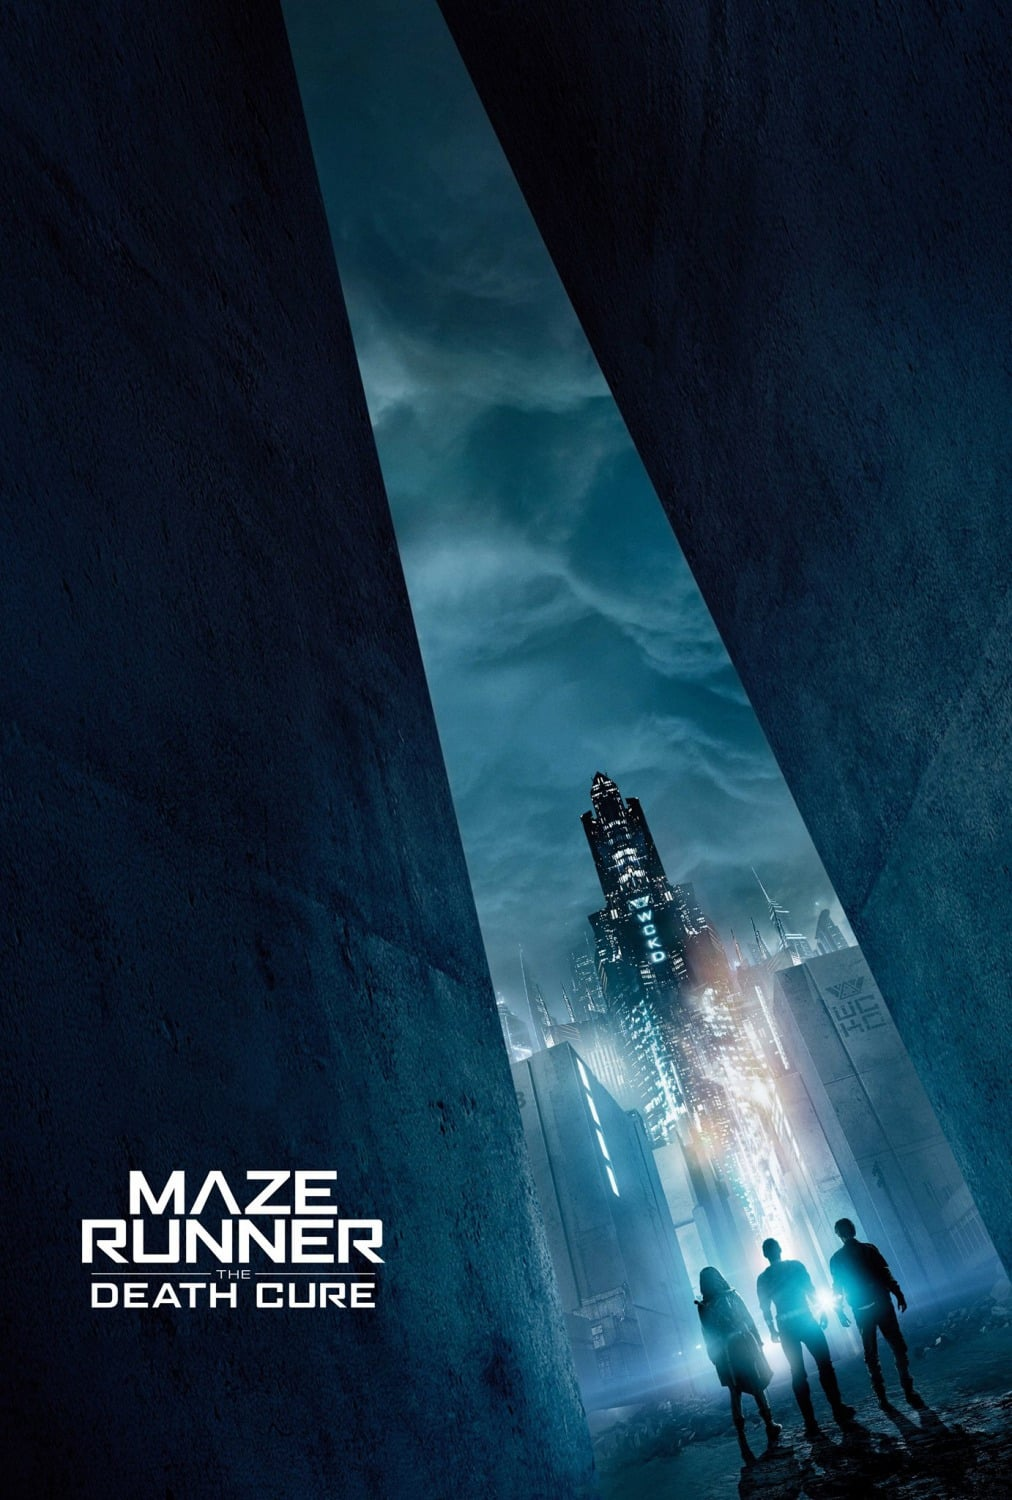 image for Maze Runner: The Death Cure